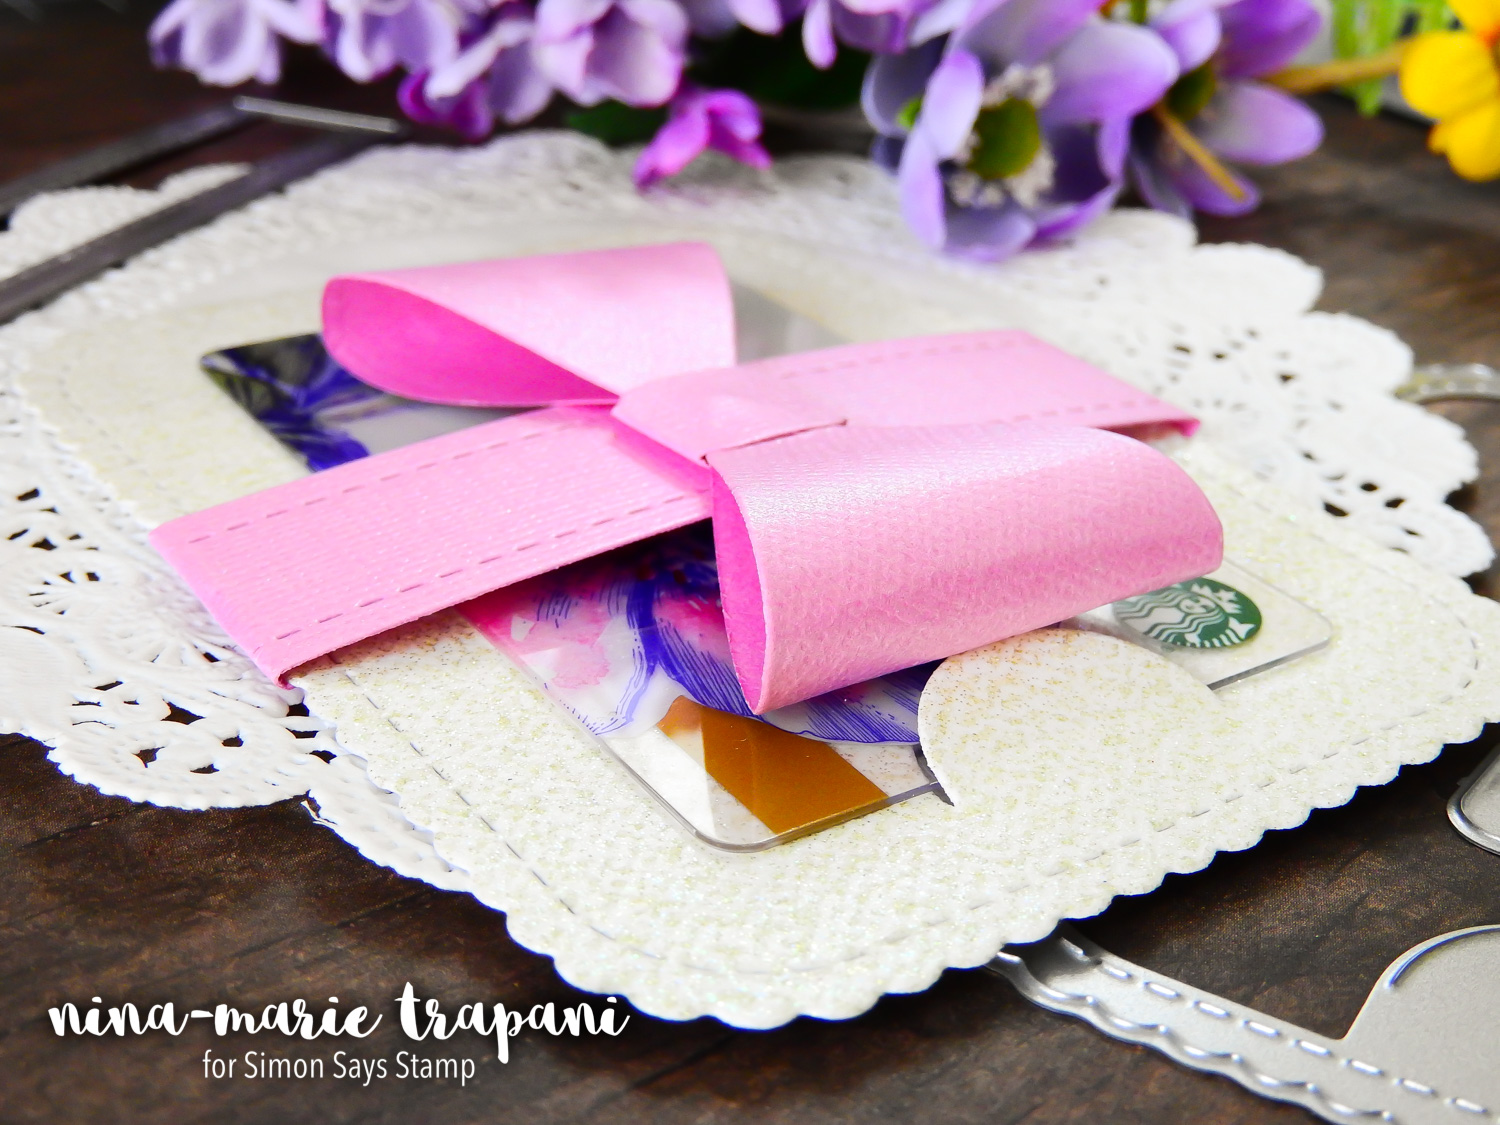 How to Use the Prettied Up Gift Card Dies from Simon Says Stamp | Nina-Marie Design